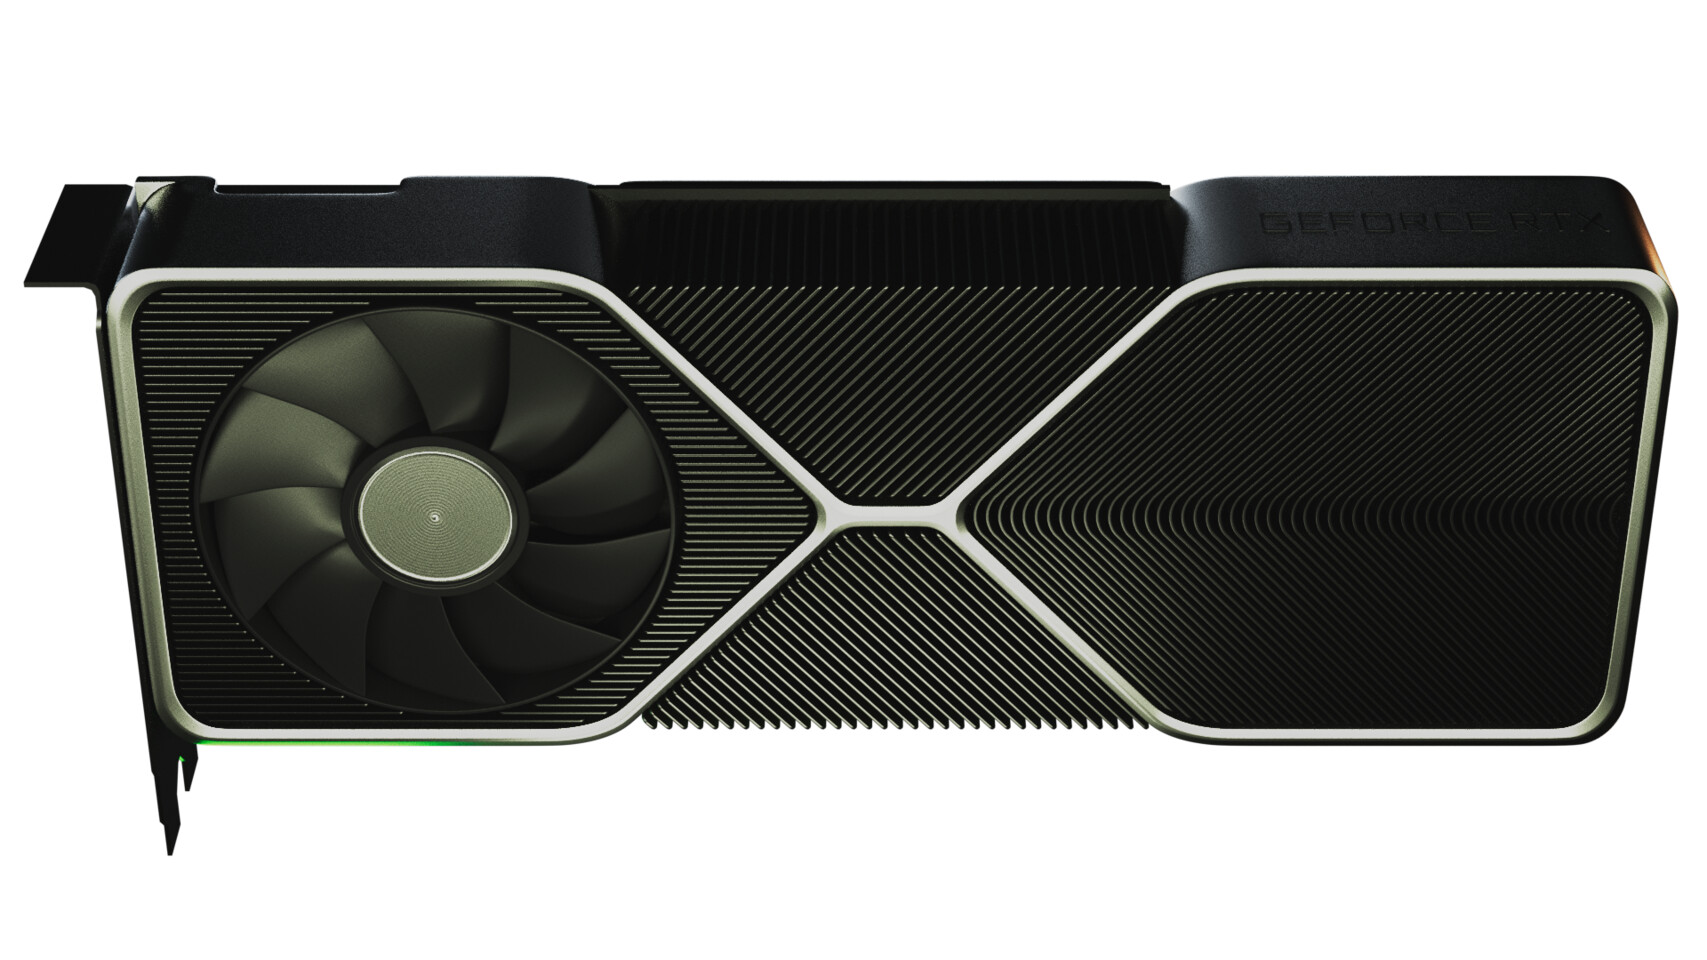 nvidia-geforce-3080